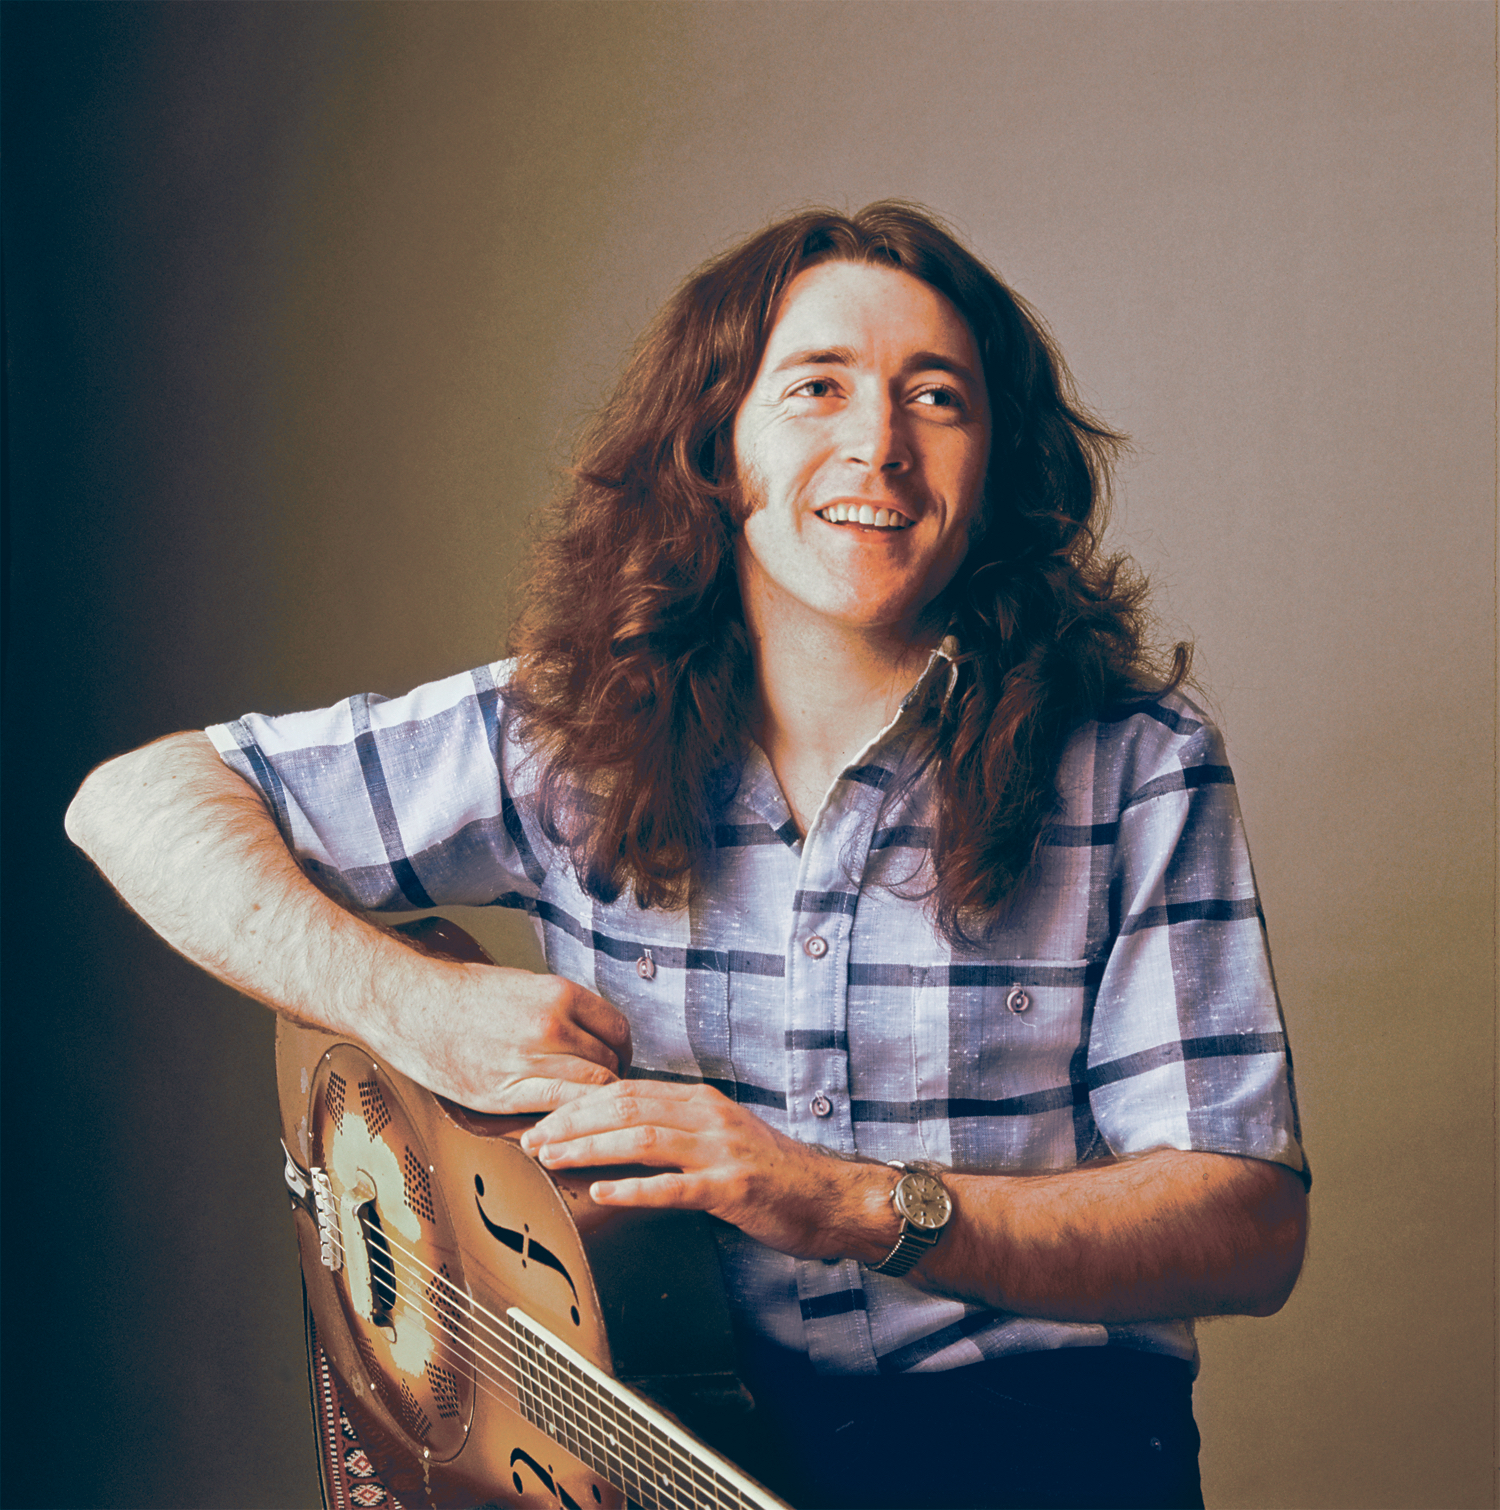 Rory Gallagher - Photos (c) Rory Gallagher Estate (1).jpg